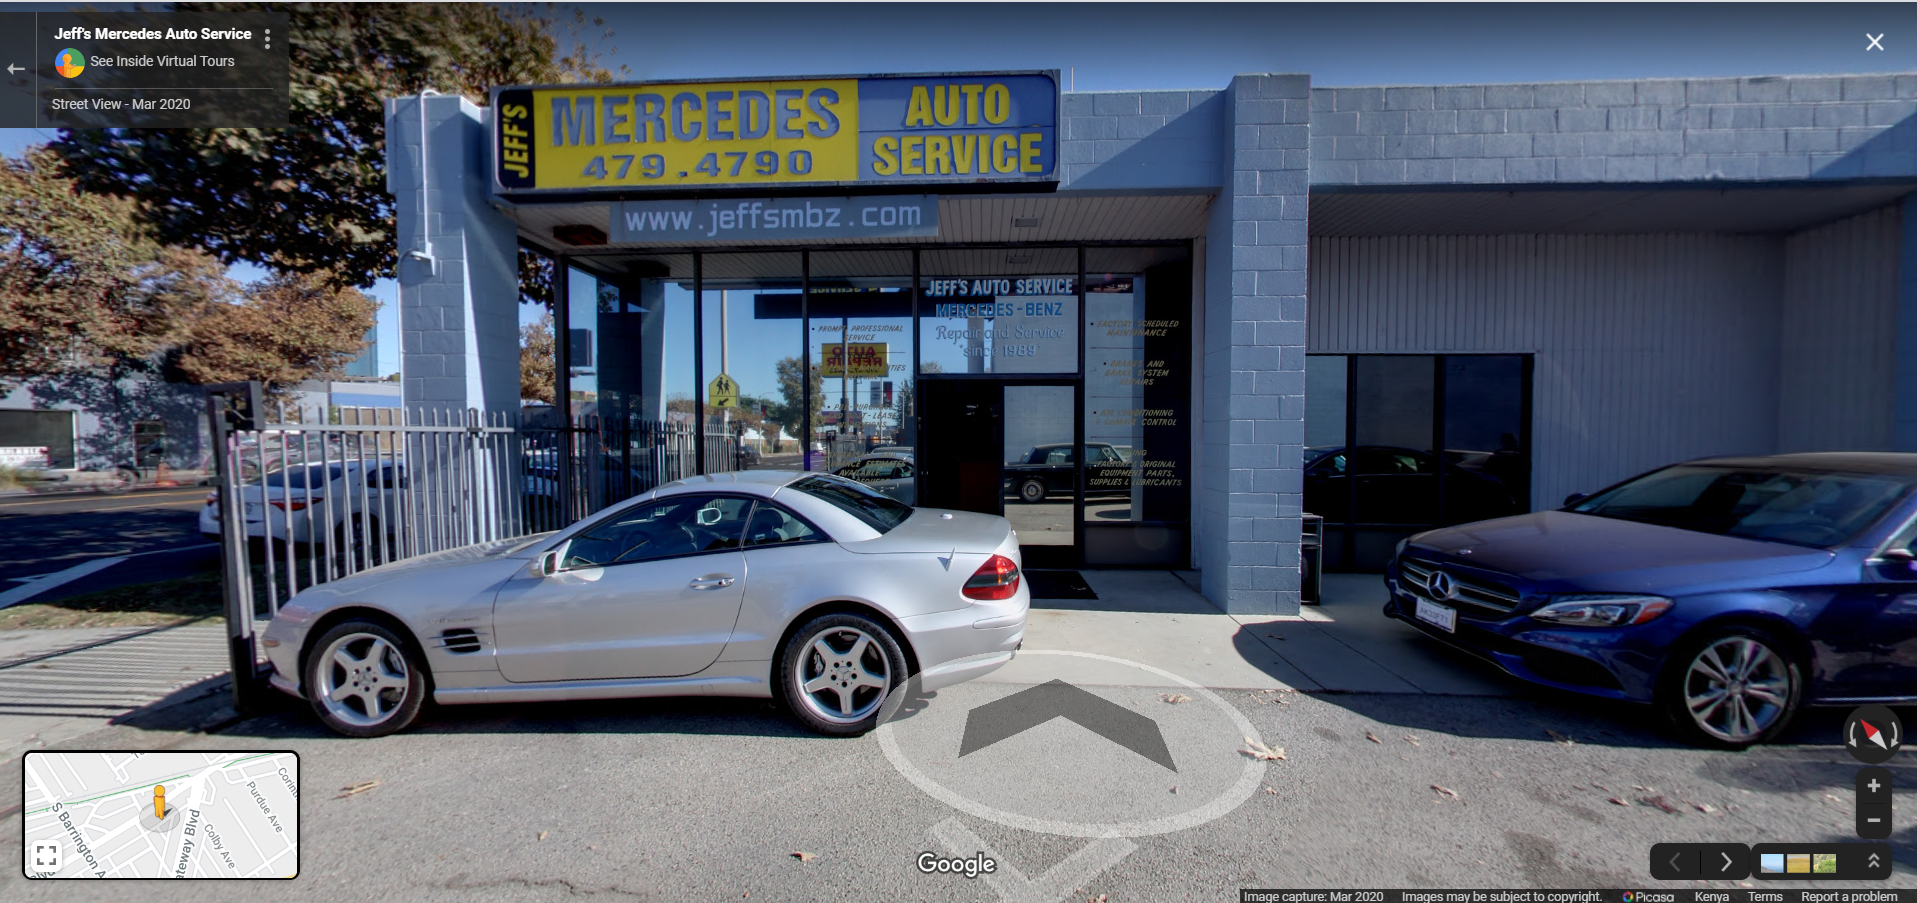 Jeff's Mercedes Auto Service - Los Angeles